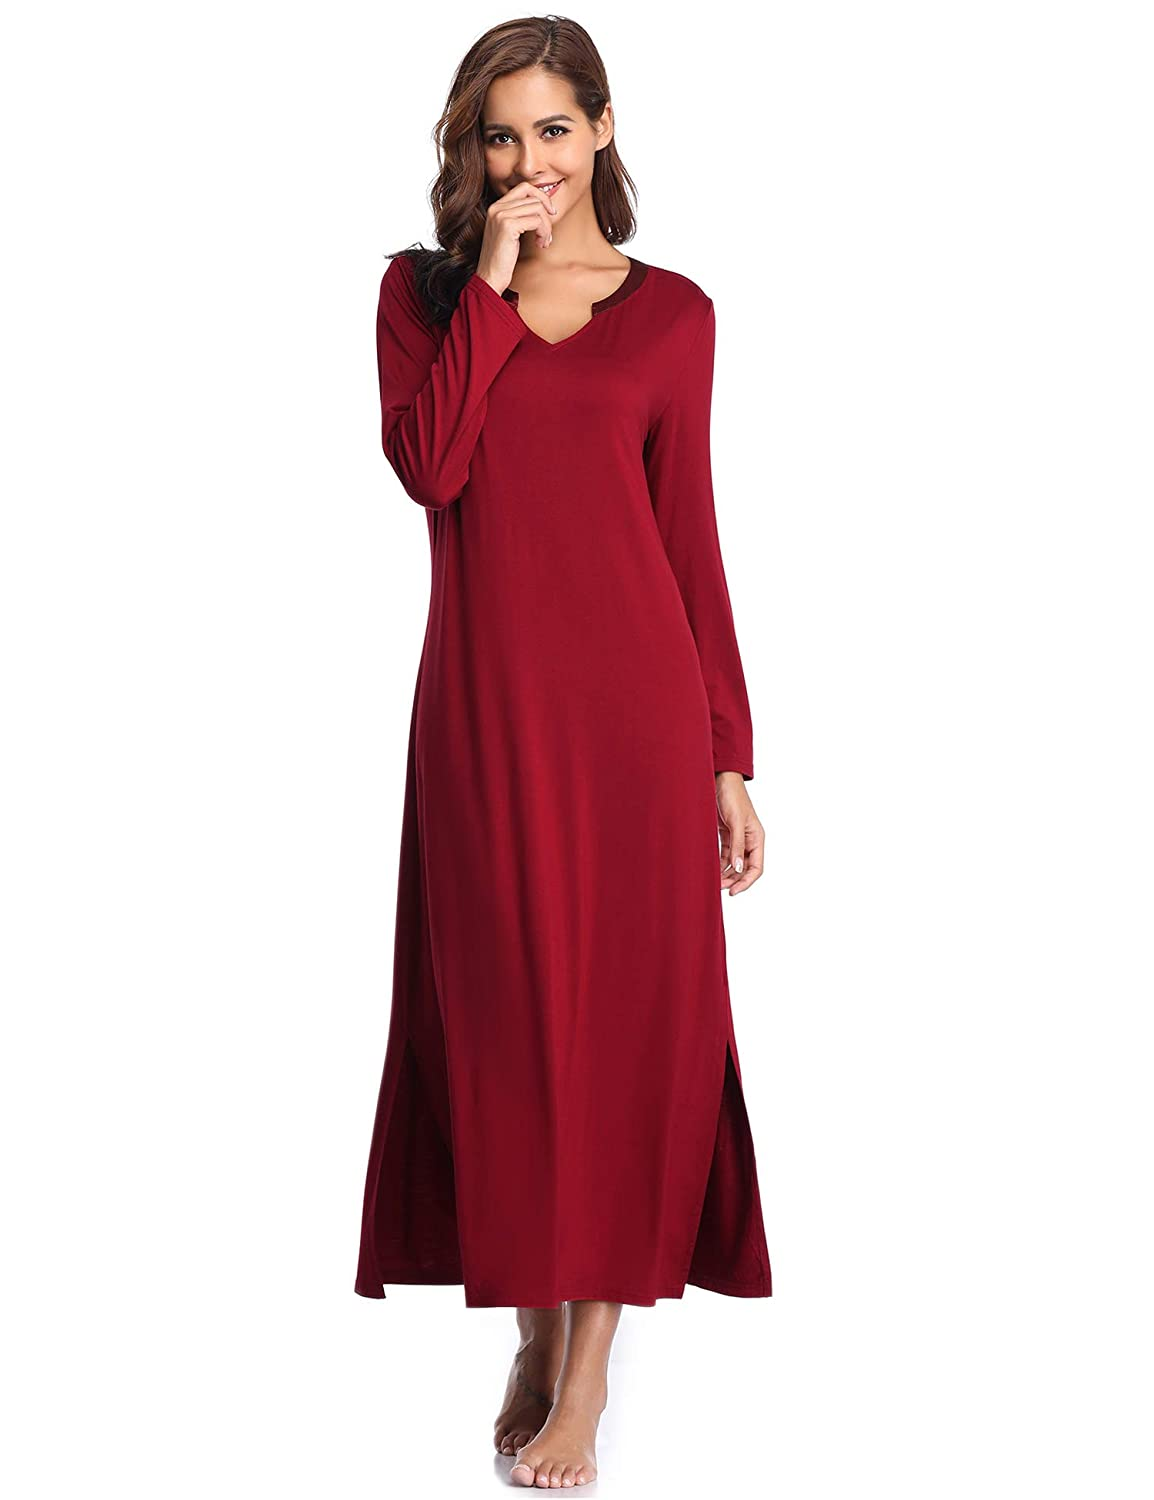 3ac540f703 Lusofie Long Nightgowns for Women V Neck Long Sleeve Sleepwear Full-Length  Nightdress (Wine Red